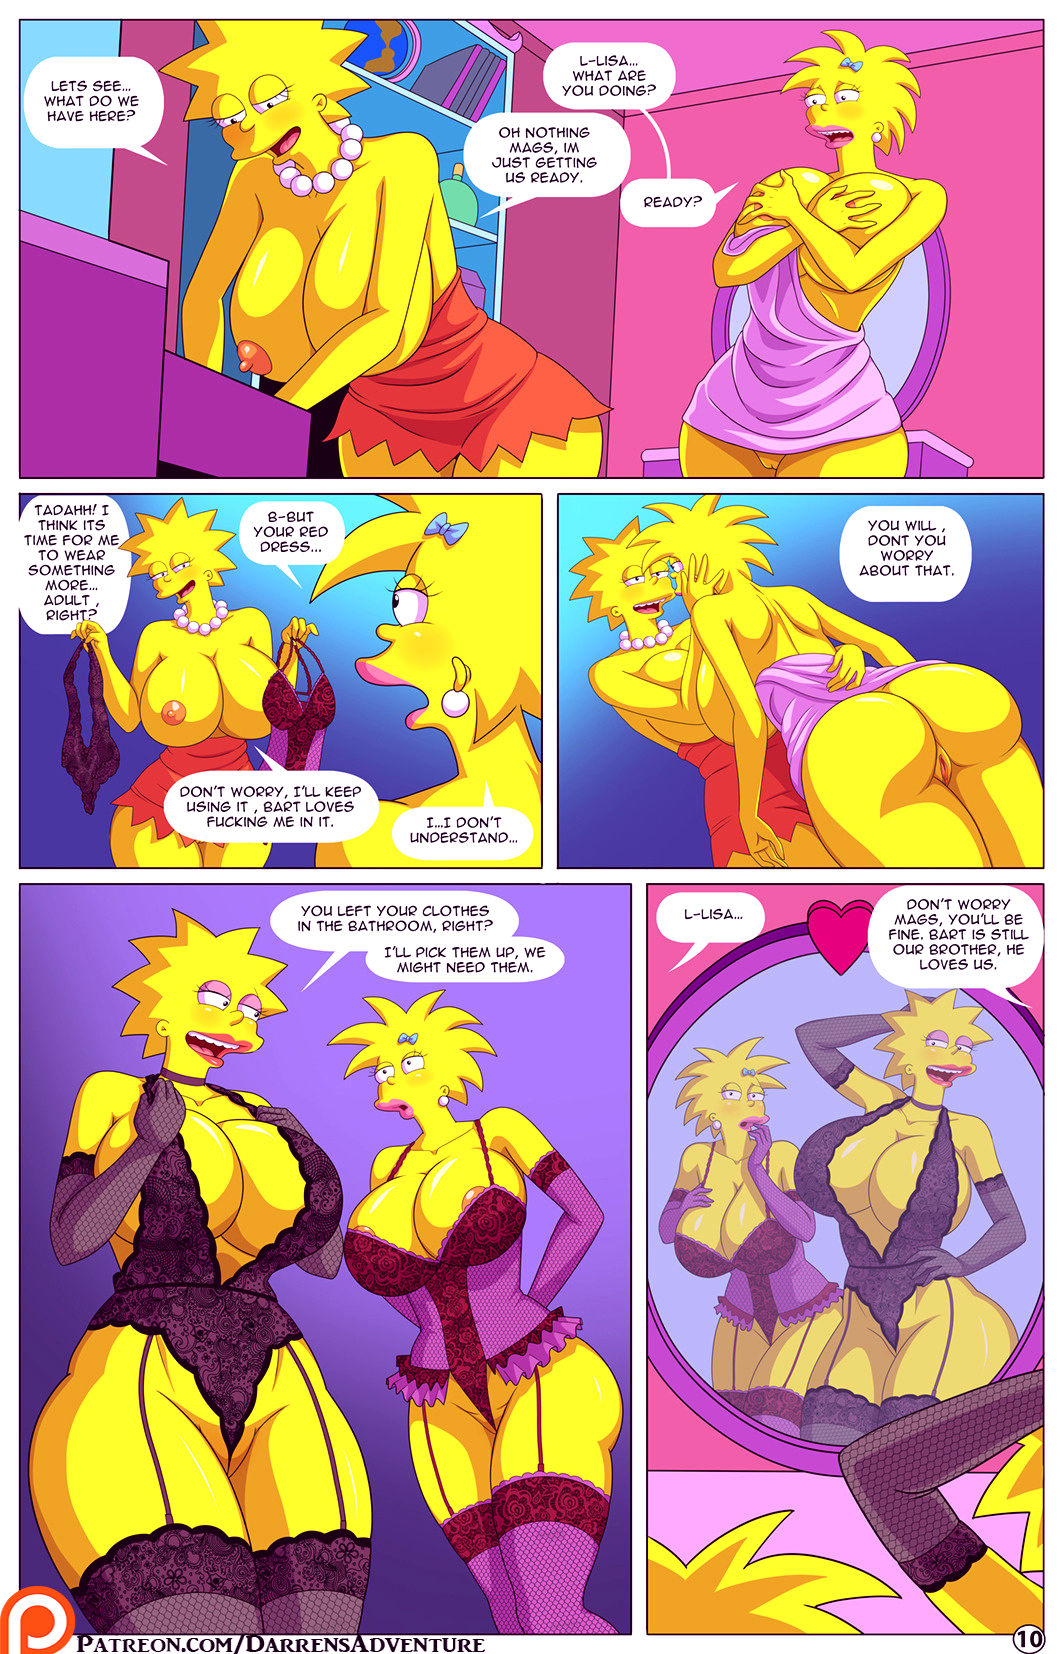 Darrens adventure or welcome to springfield porn comic picture 83